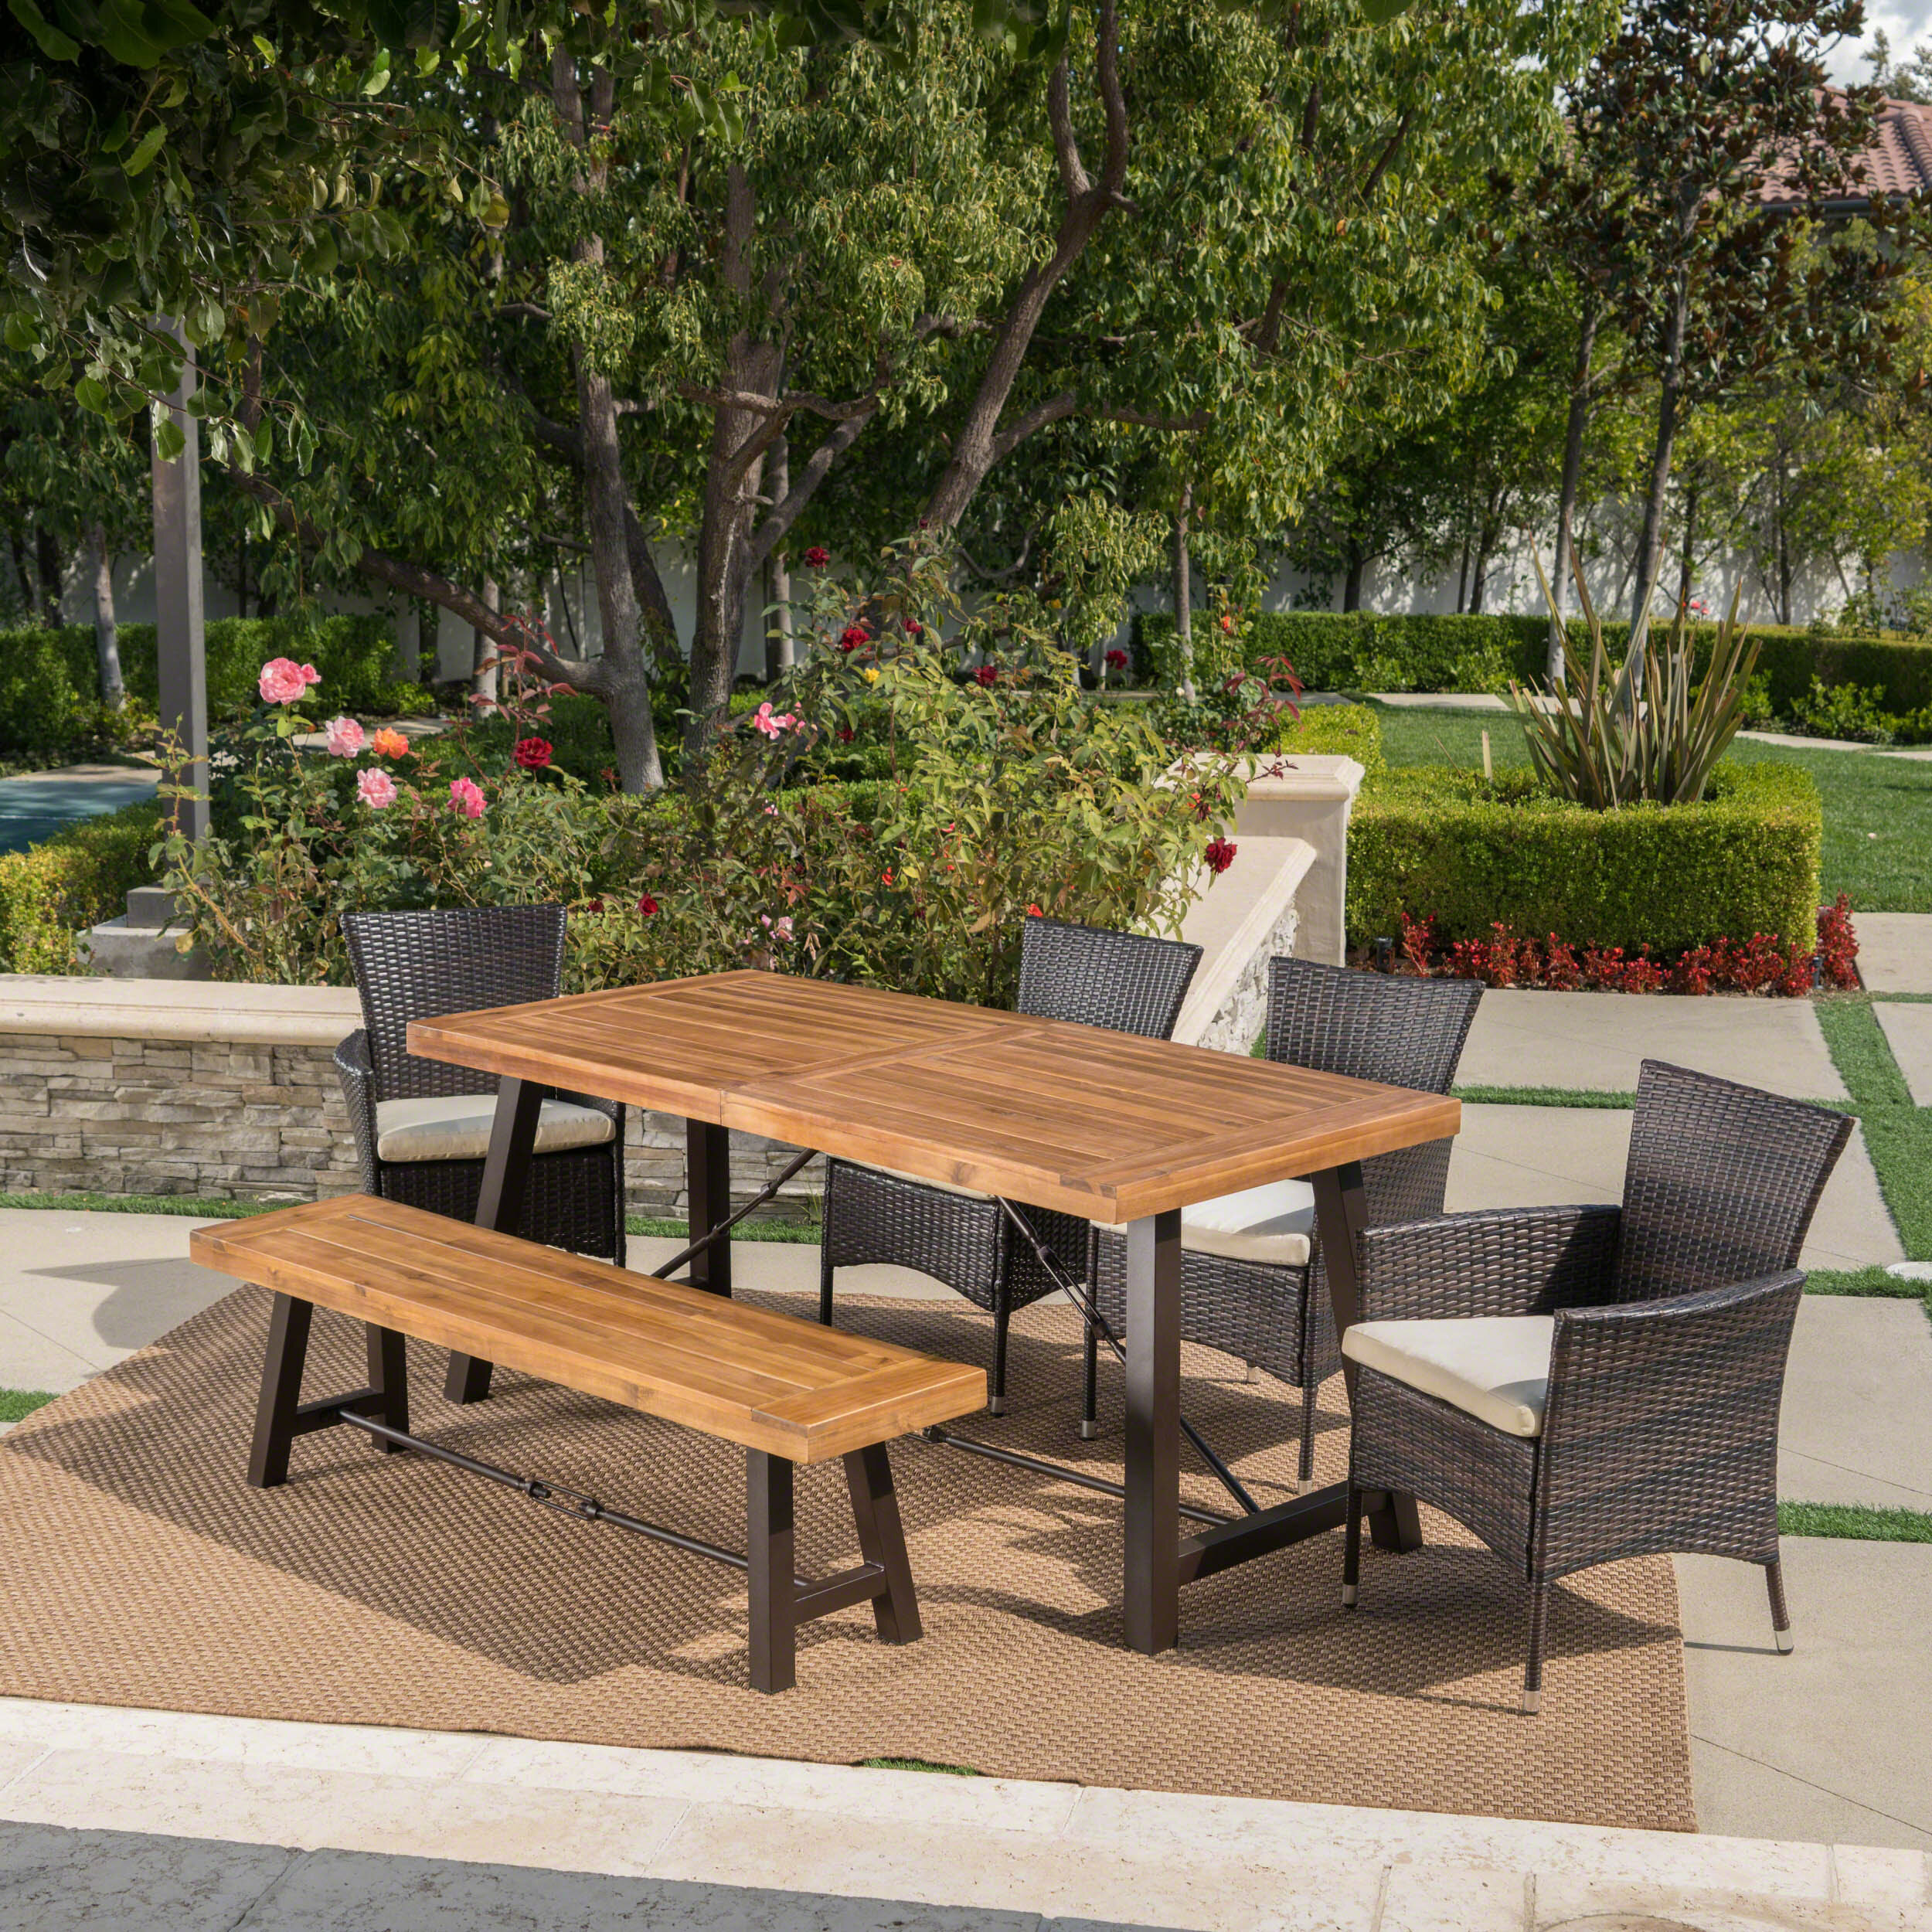 Red Barrel Studio Mccourt Outdoor 6 Piece Dining Set With Cushions Reviews Wayfair